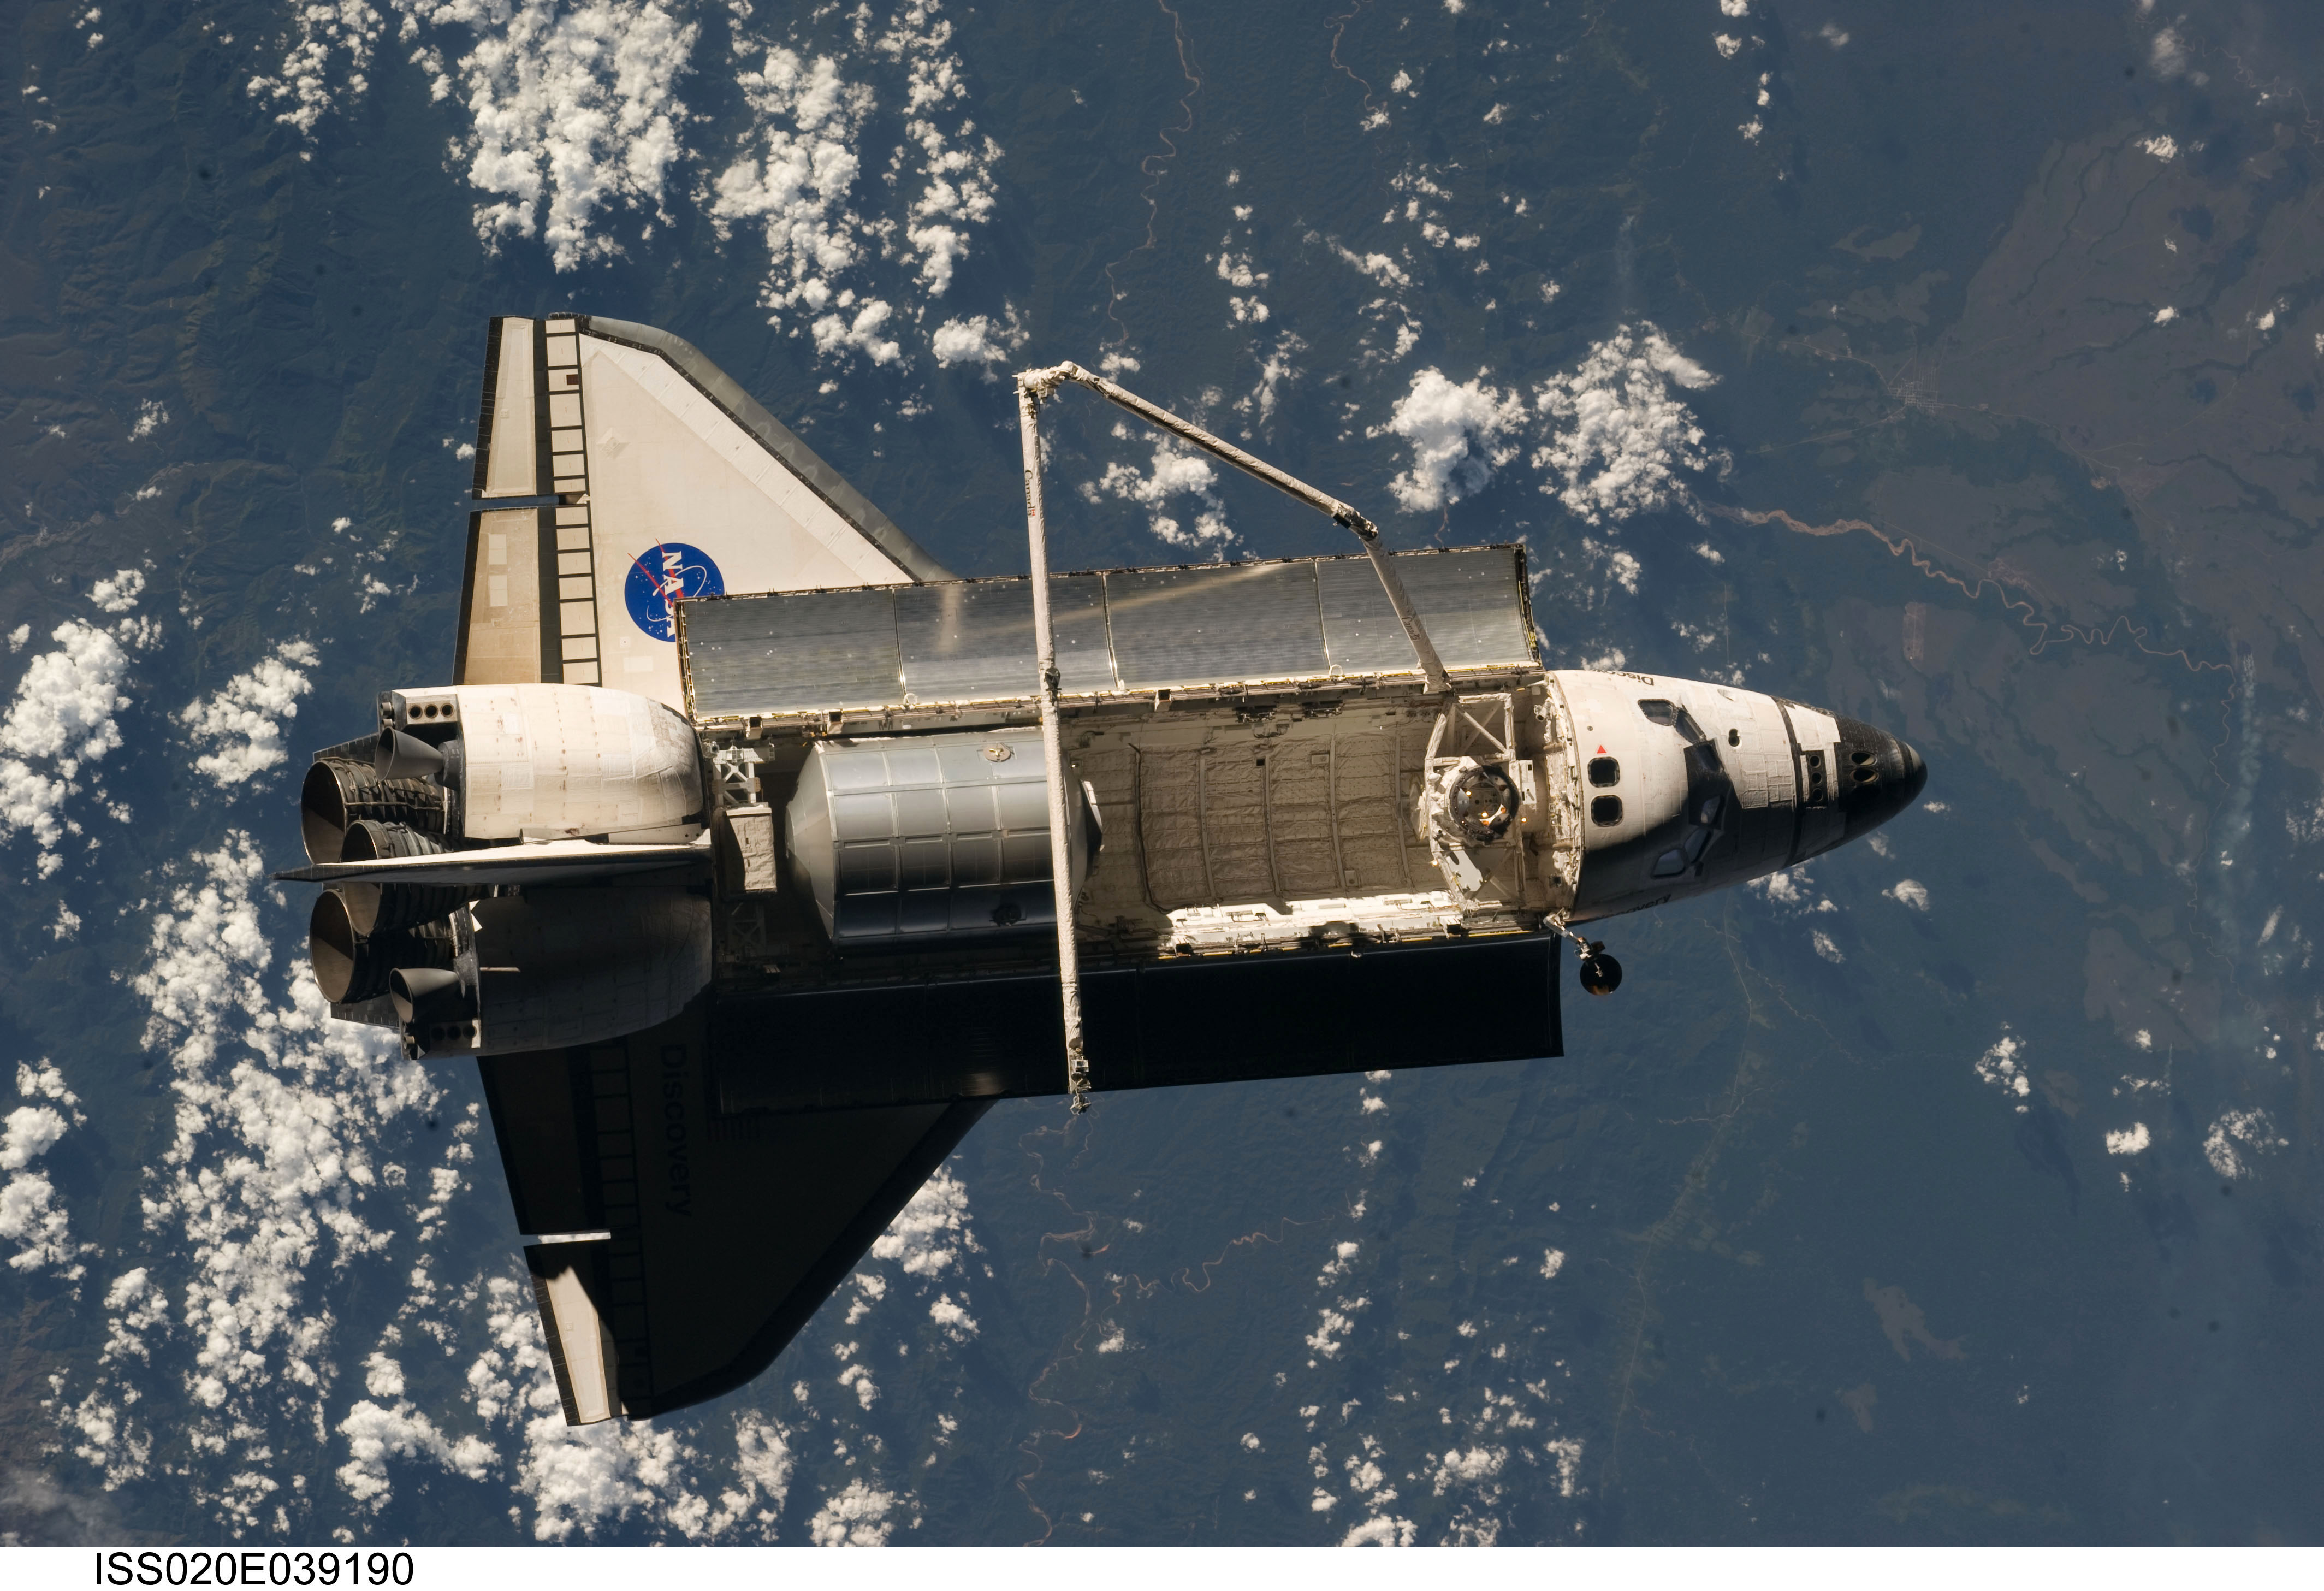 space shuttle discovery missions - photo #36